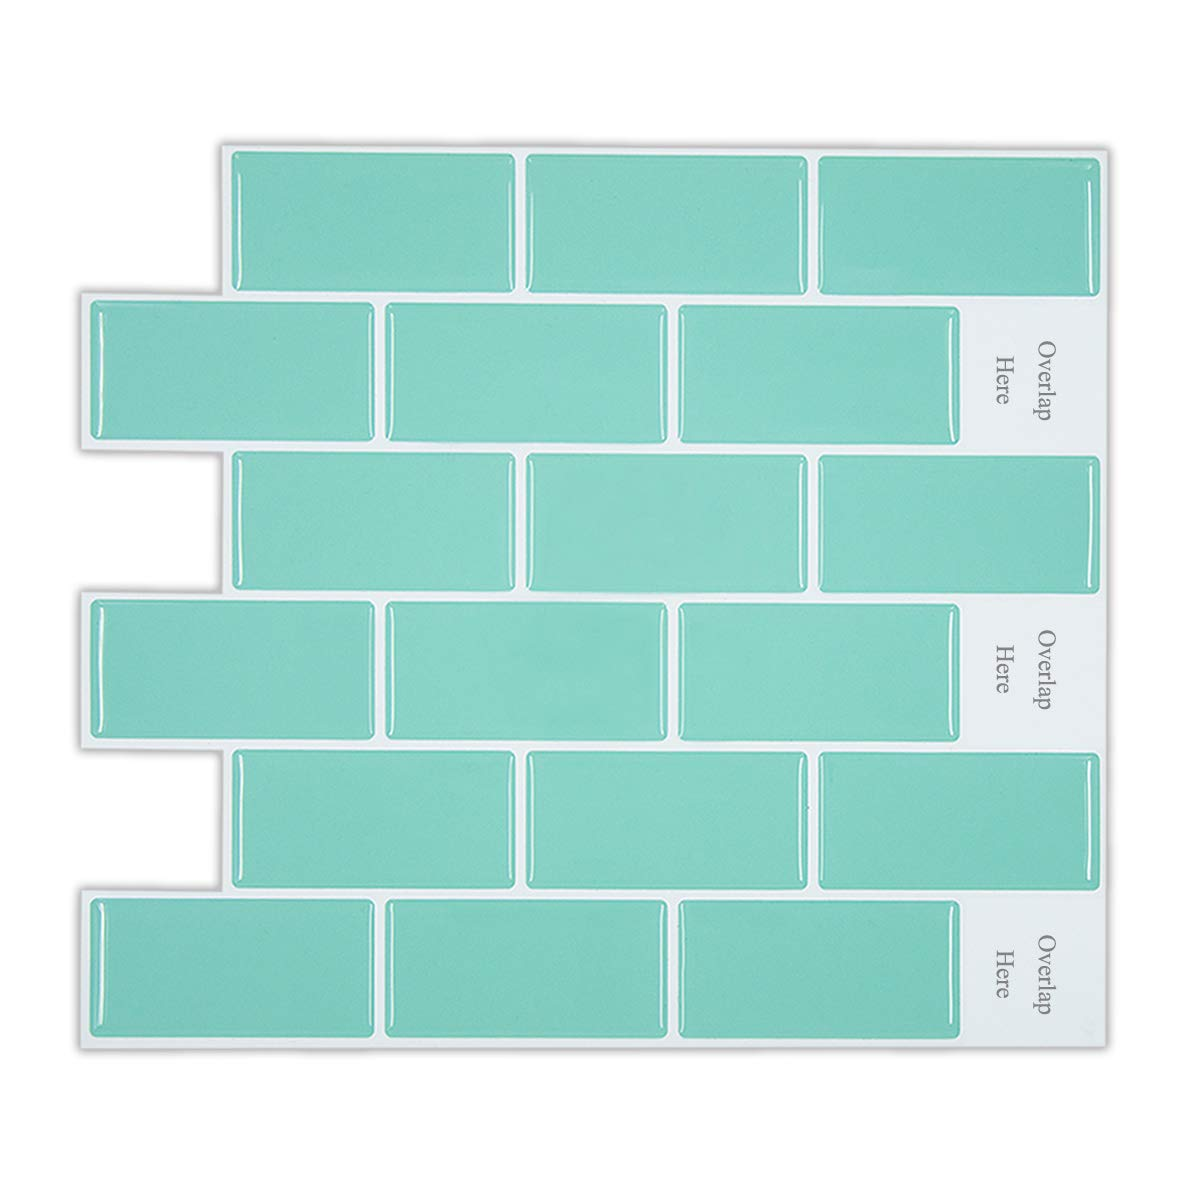 HUE DECORATION Peel and Stick Subway Tile Backsplash for Kitchen, Anti Mold Aqua Backsplash Tile 11.26' x 10' Pack of 6 Anti Mold Aqua Backsplash Tile 11.26 x 10 Pack of 6